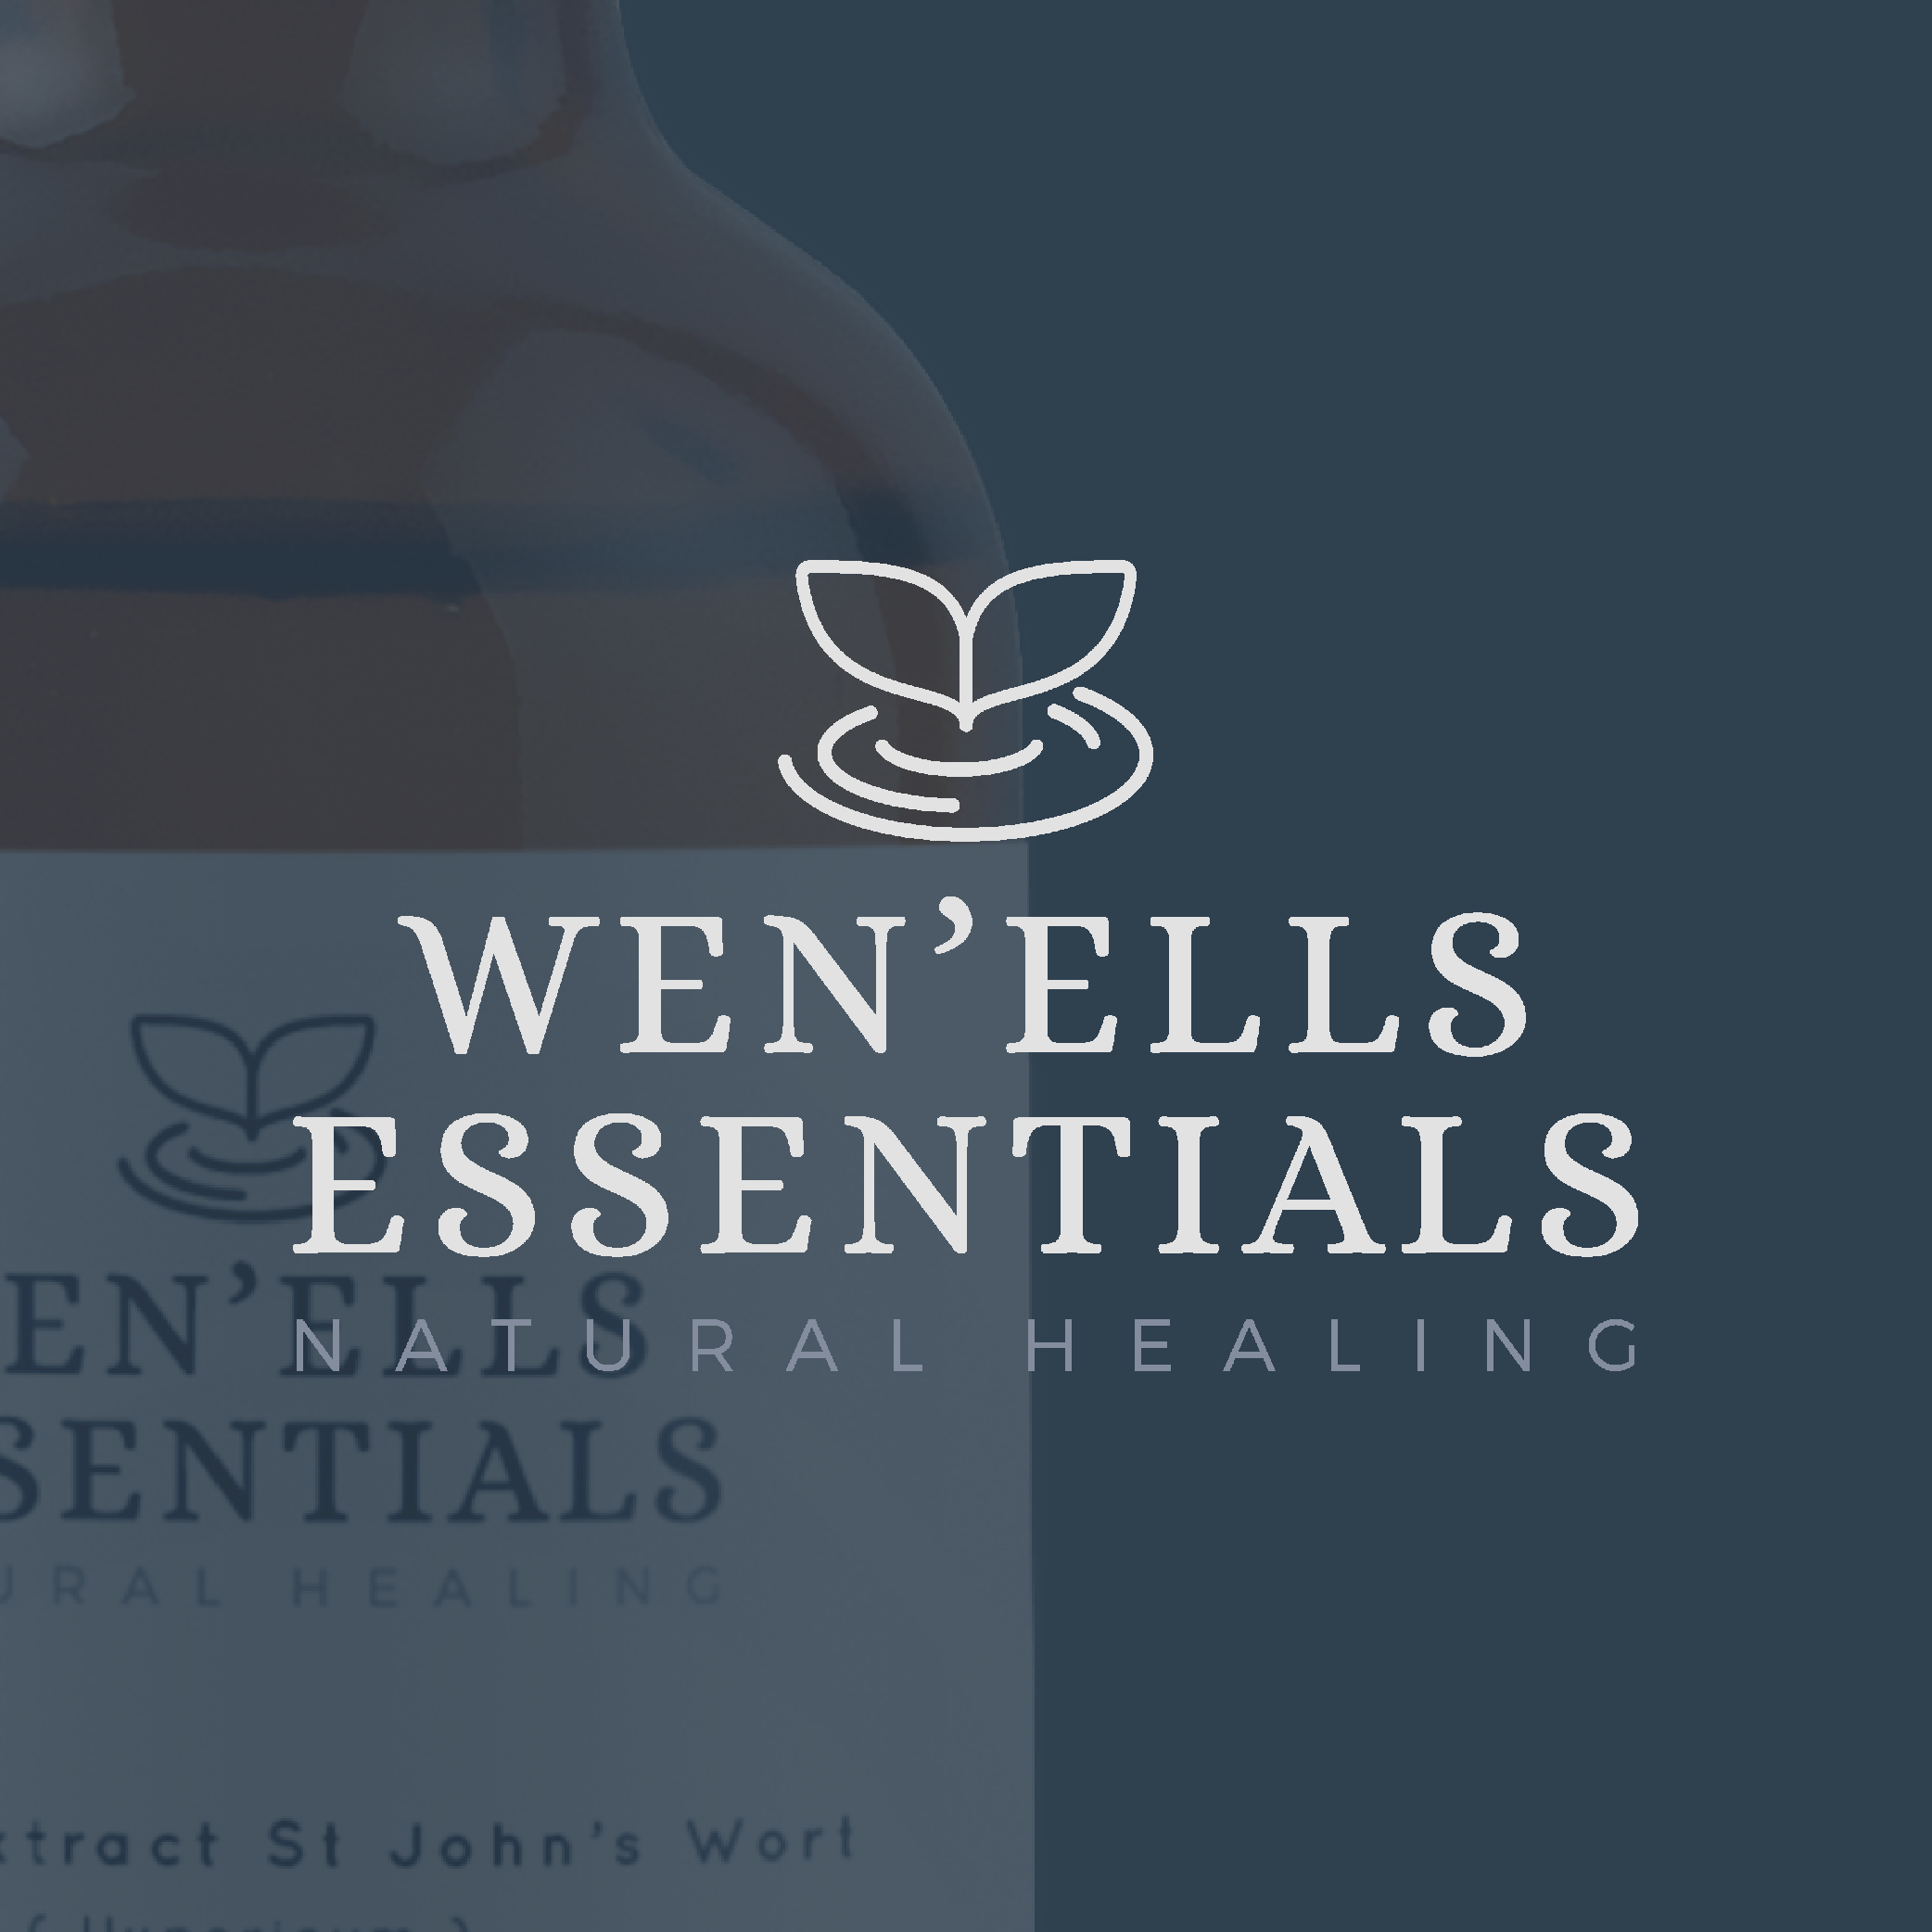 Wenells Essentials